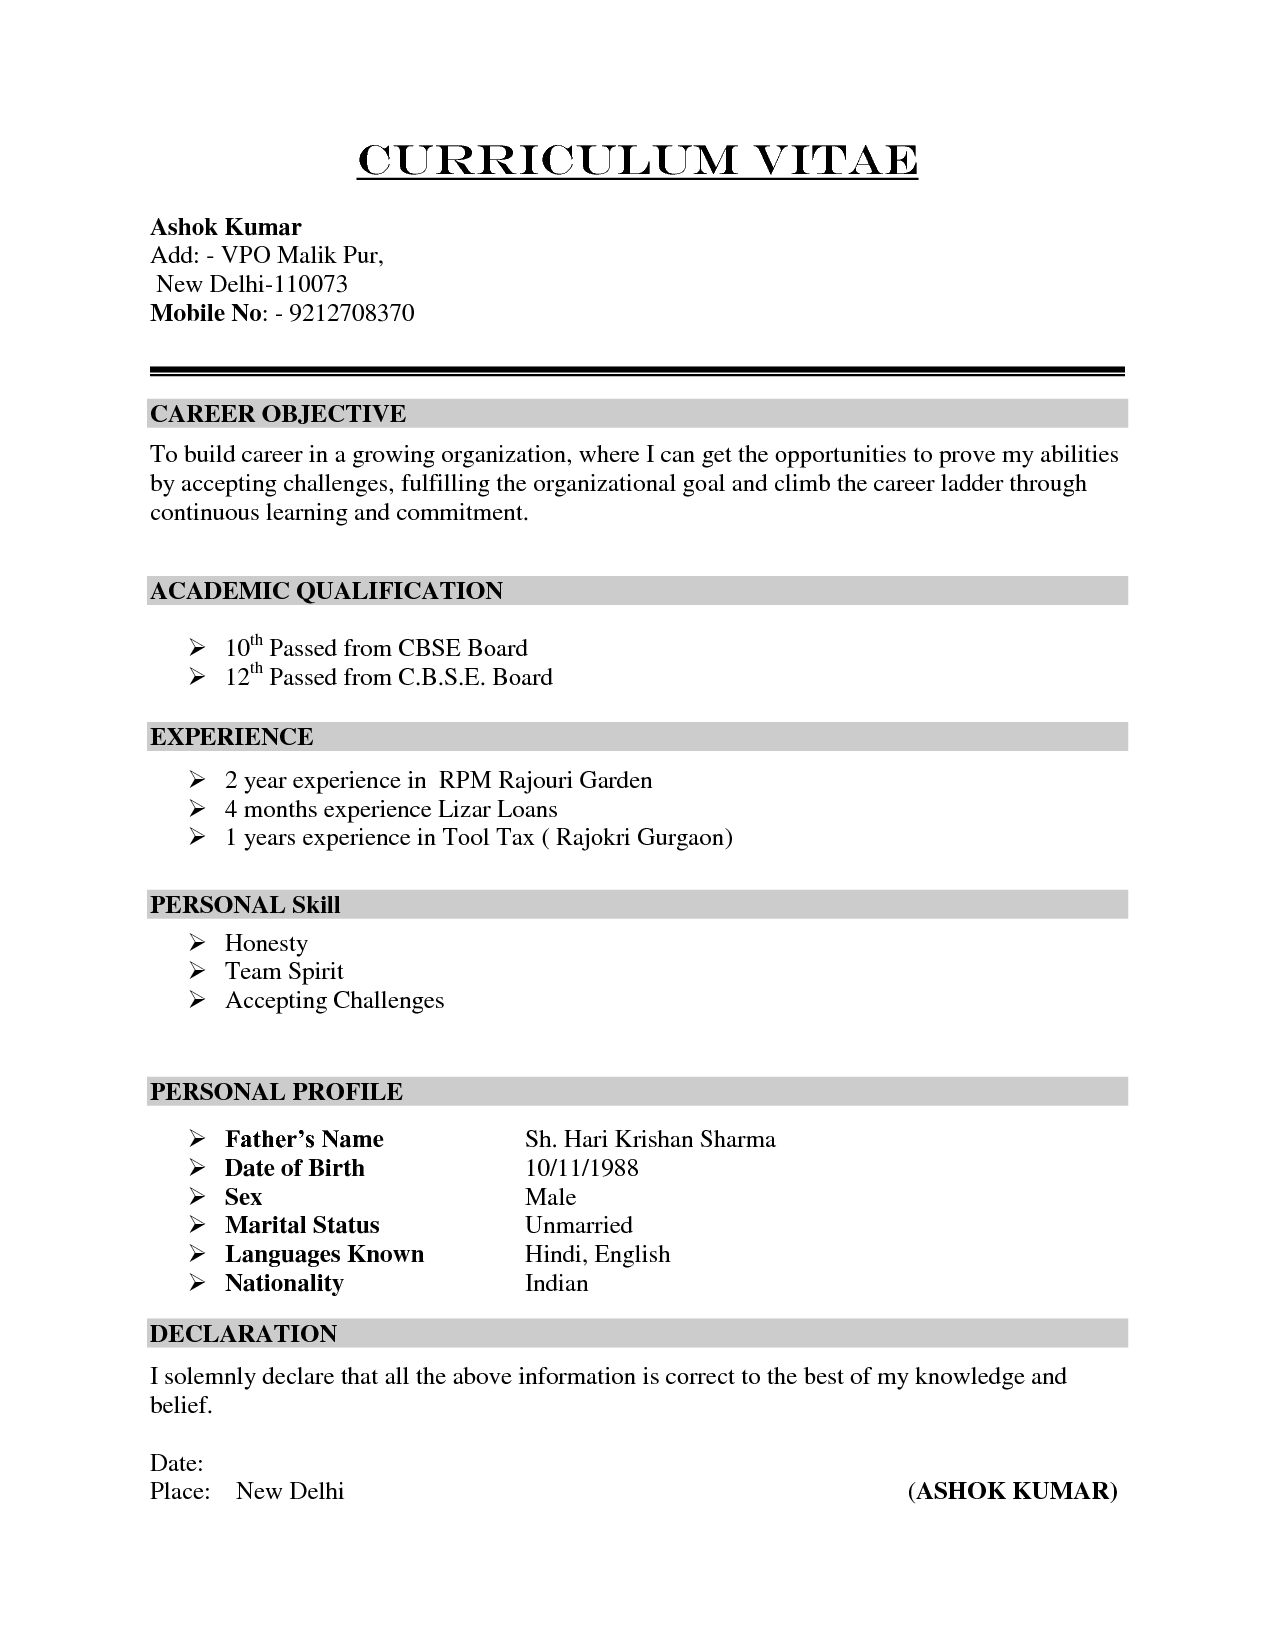 Curriculum Vitea Samples Latest Resume Anxjvo0r Education Sample